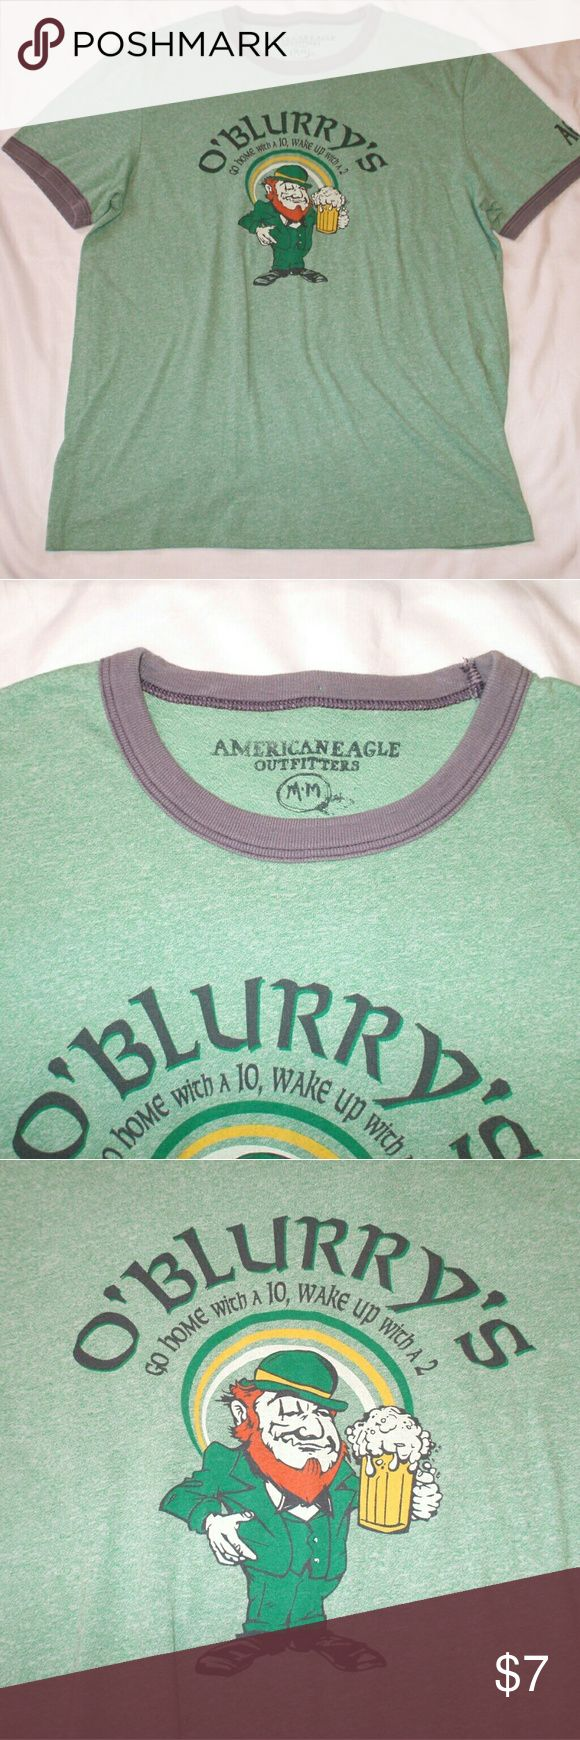 American Eagle St. Patrick's Day Novelty T Shirt Short sleeve - Crew neck - Soft cotten blend - Worn one time - Smoking home - I will ship by the next business day to ensure St. Patty's Day delivery!!! American Eagle Outfitters Shirts Tees - Short Sleeve